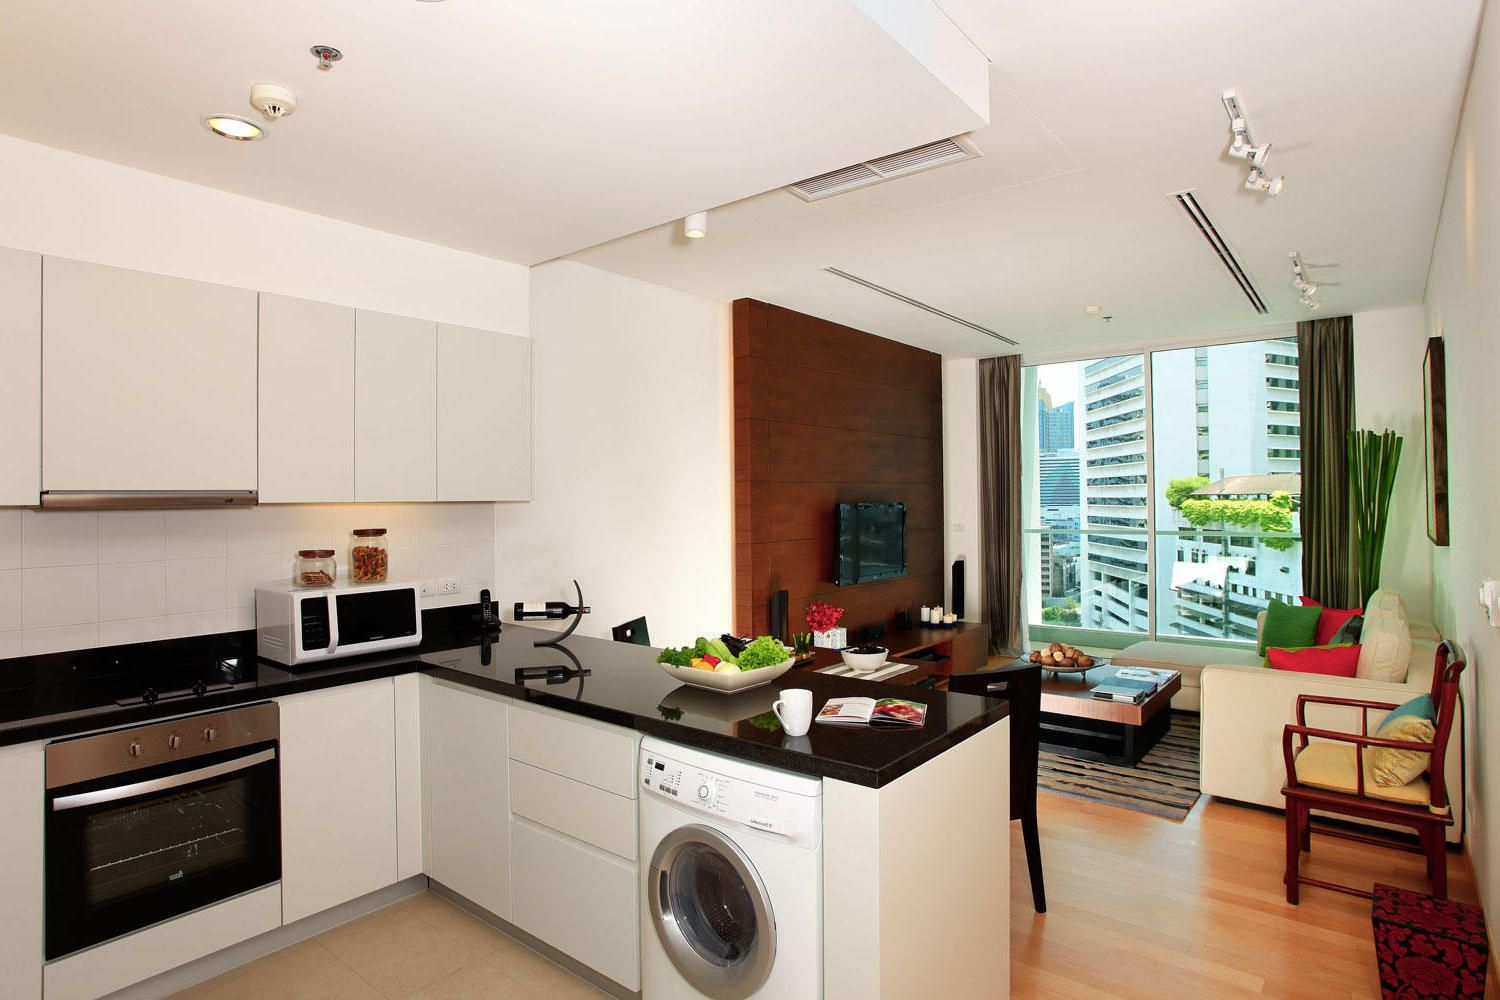 Small Spaces Kitchen And Living Room Apartment In One Room